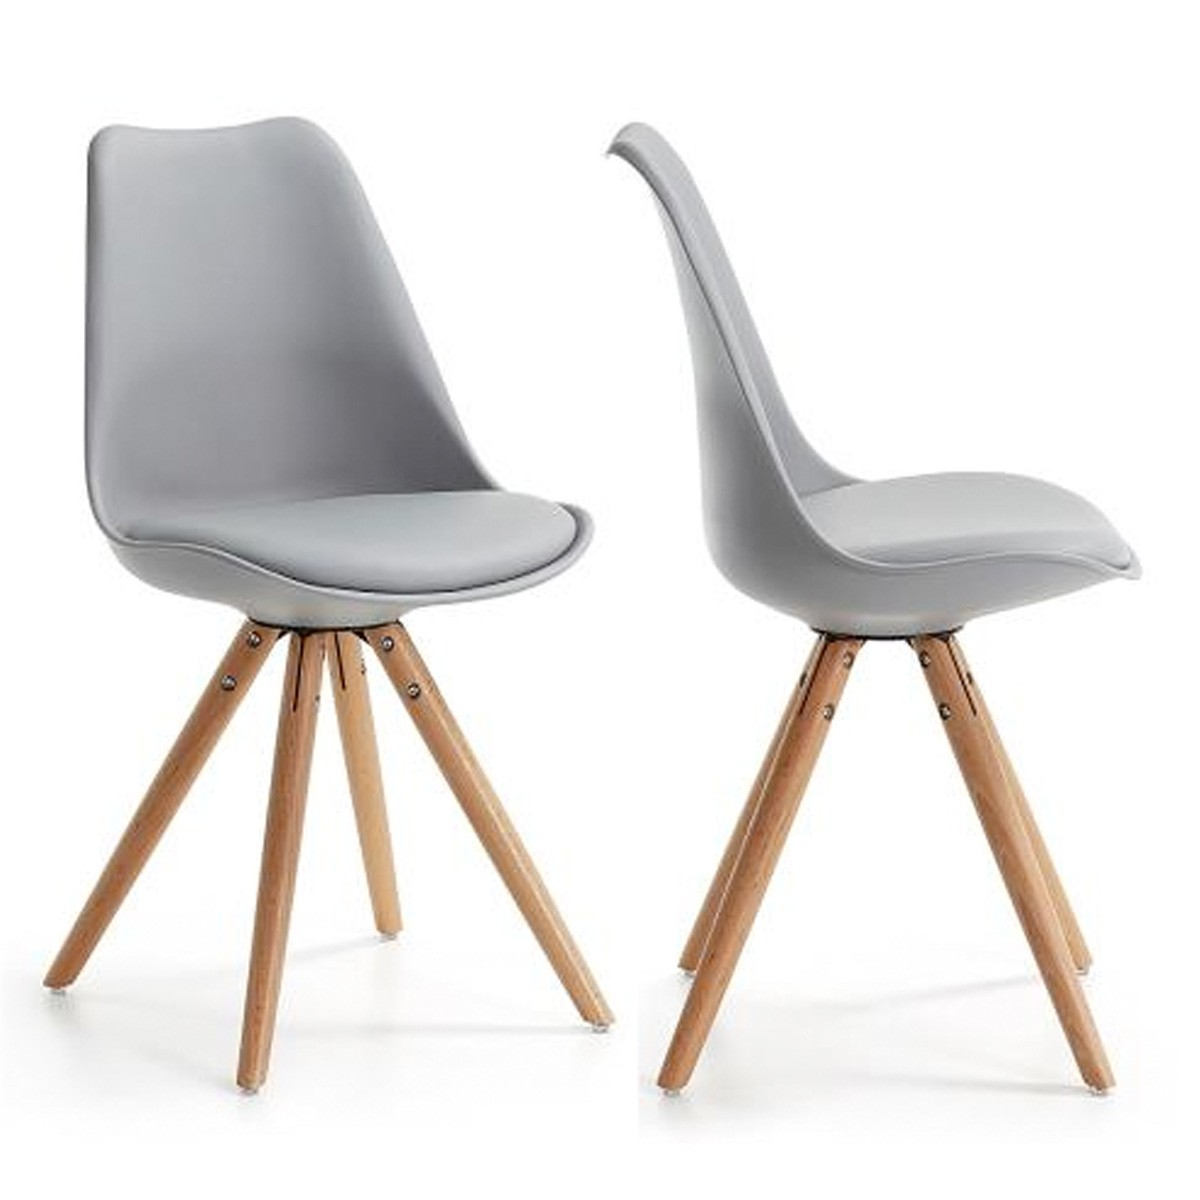 Chaises design une belle s lection d co tendance for Chaise de design